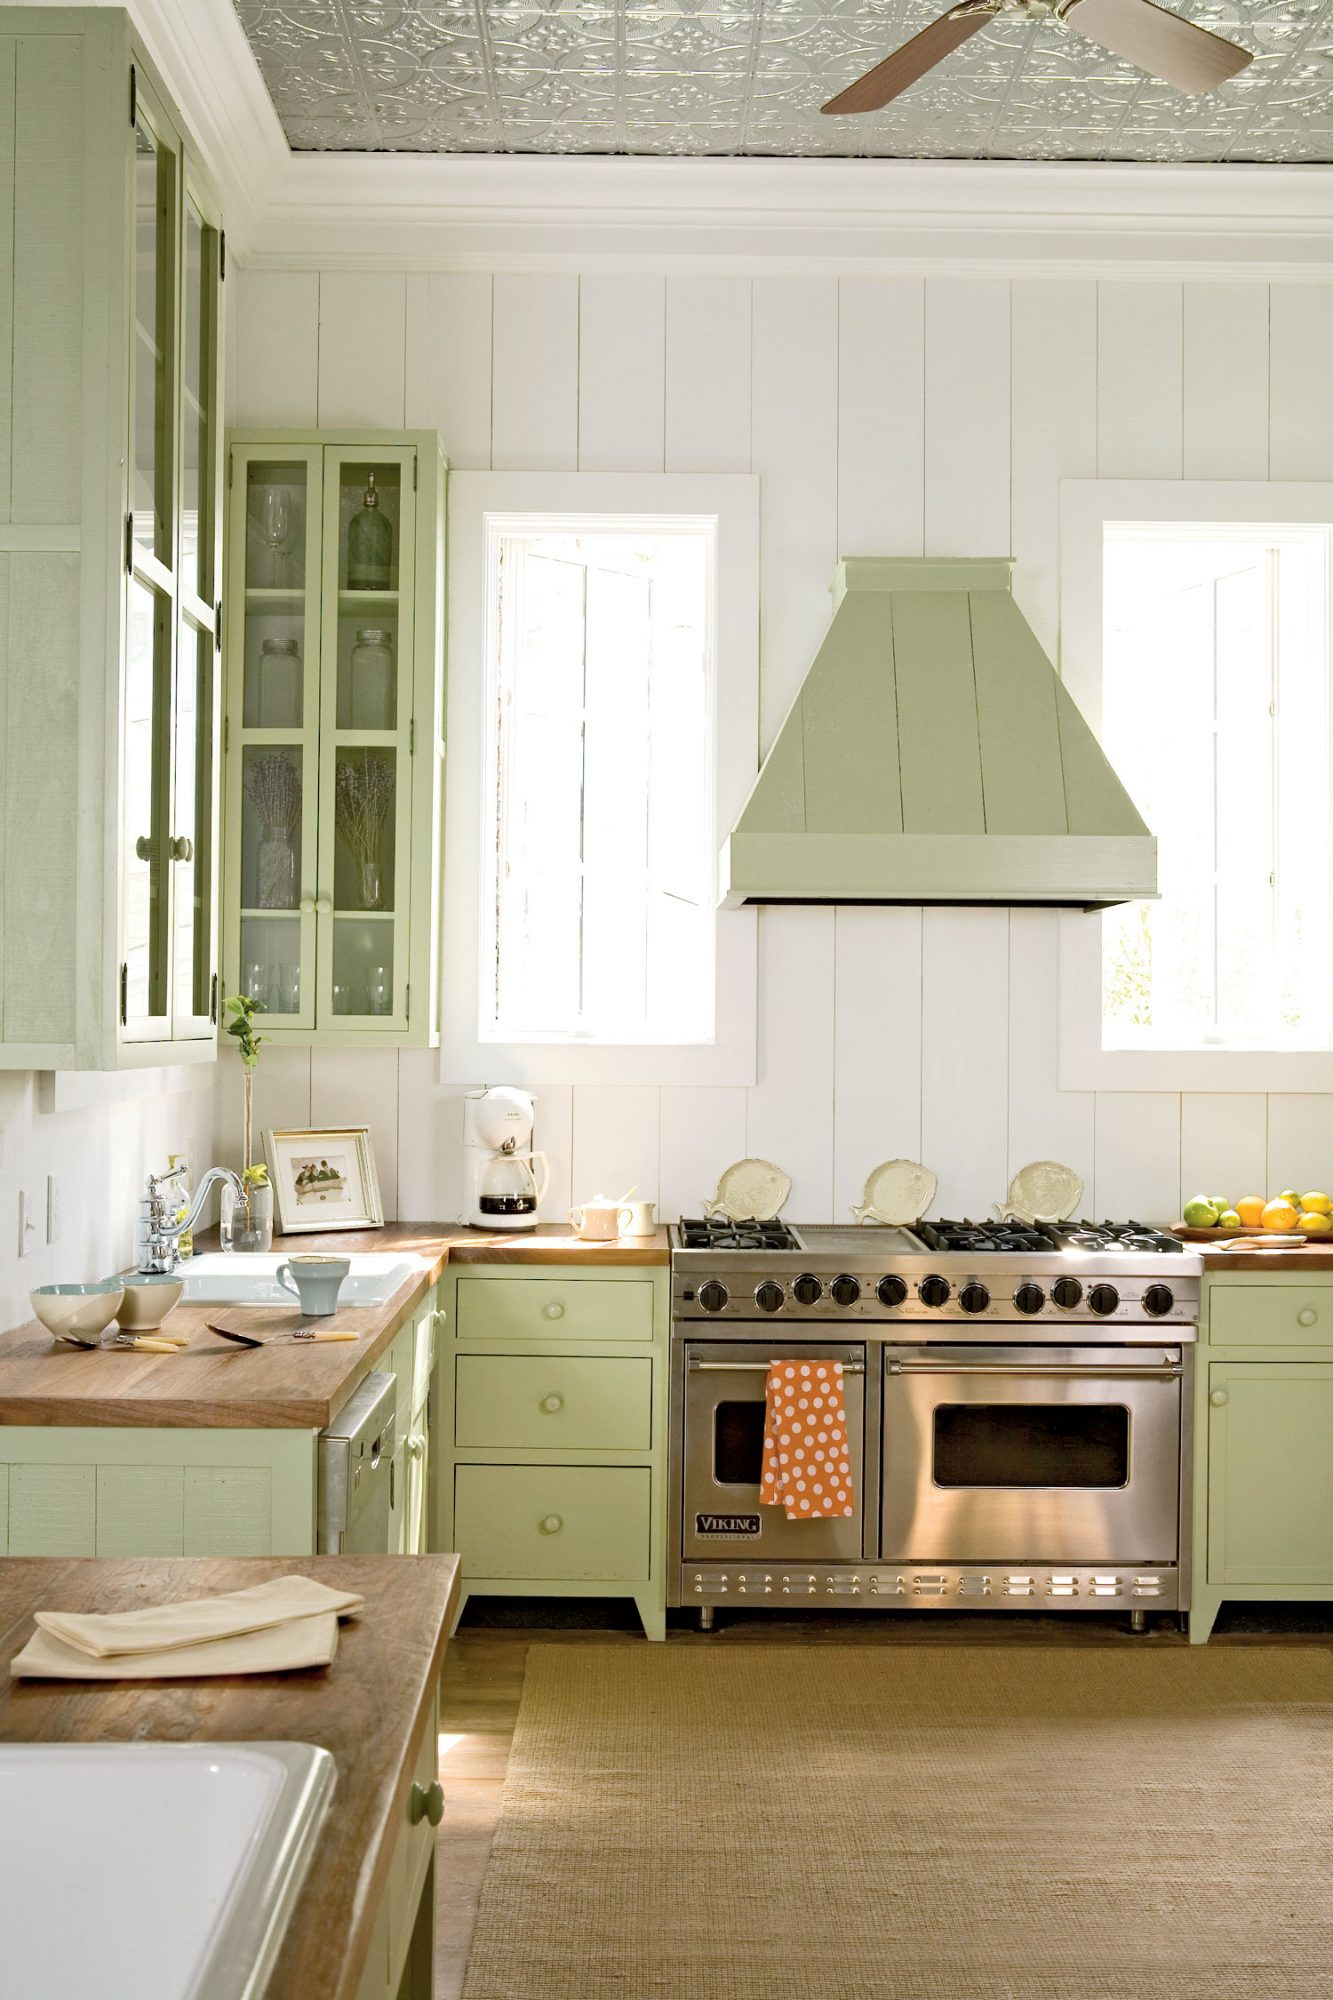 A clean colorless background allows you to have a little fun with your cabinetry. This cool Key lime hue really pops and is as refreshing as it is sweet.